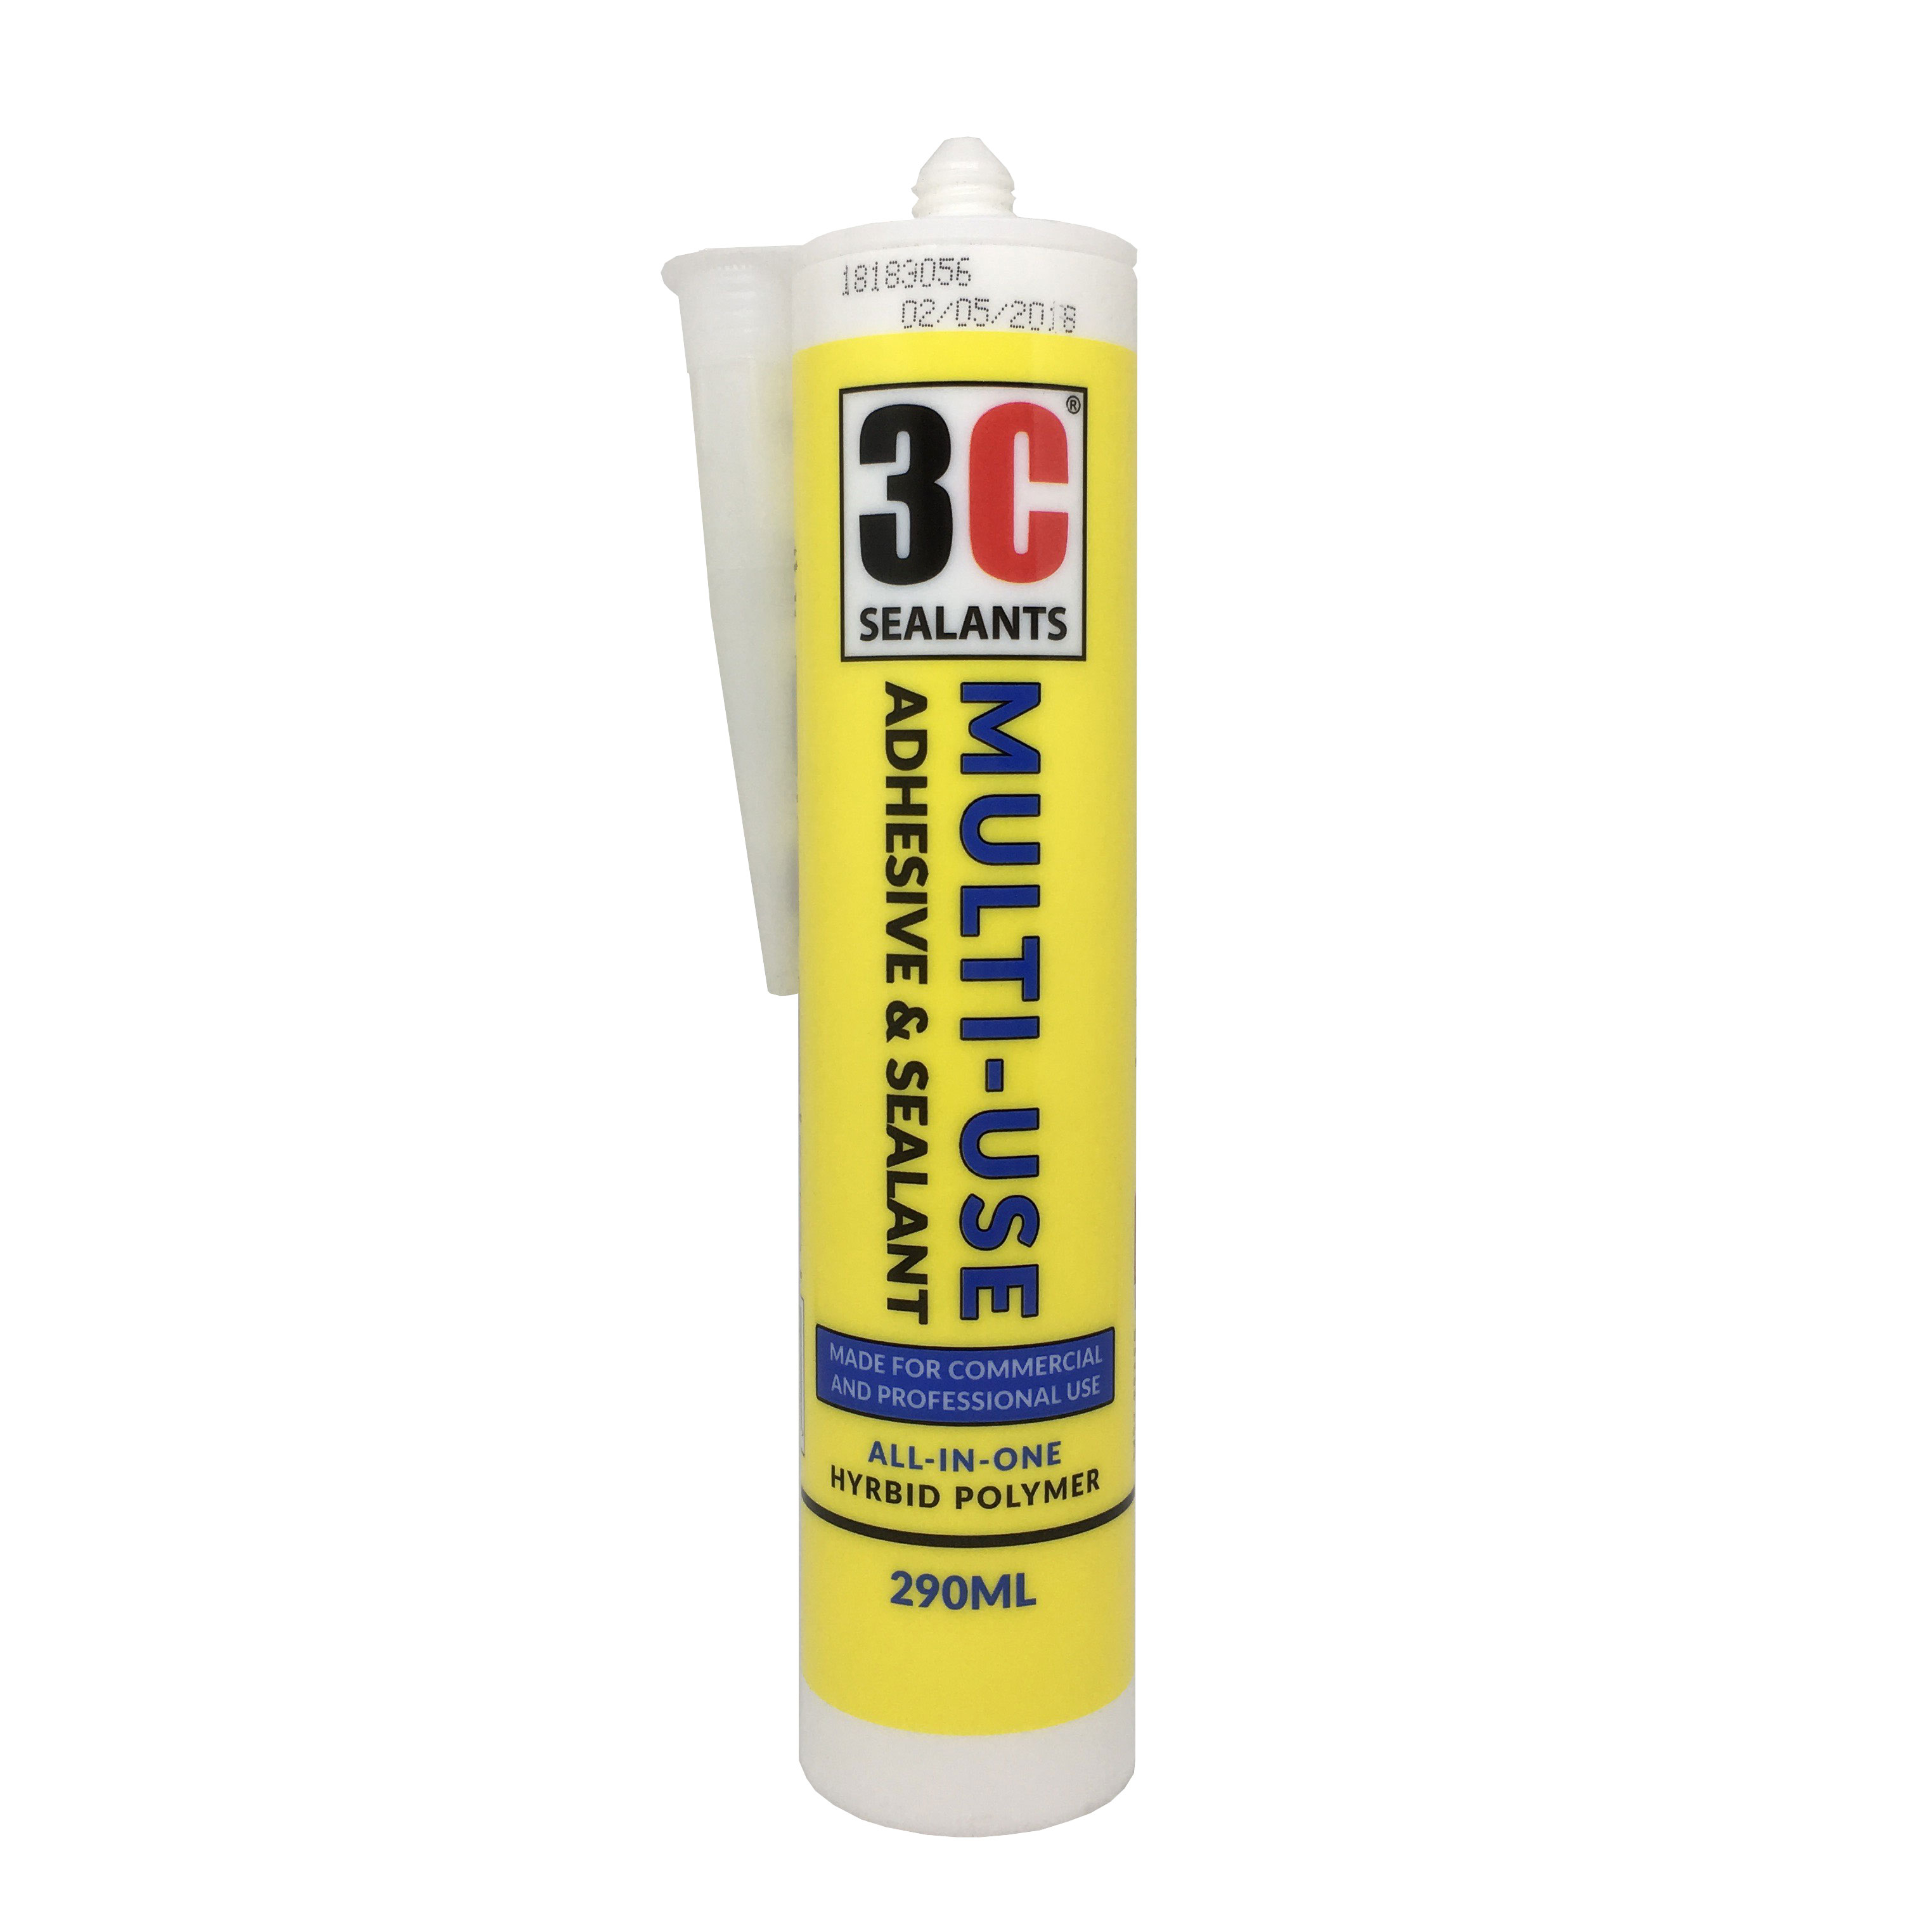 3C Sealants Multi-Use Adhesive & Sealant White 290ML (RAL 9010)